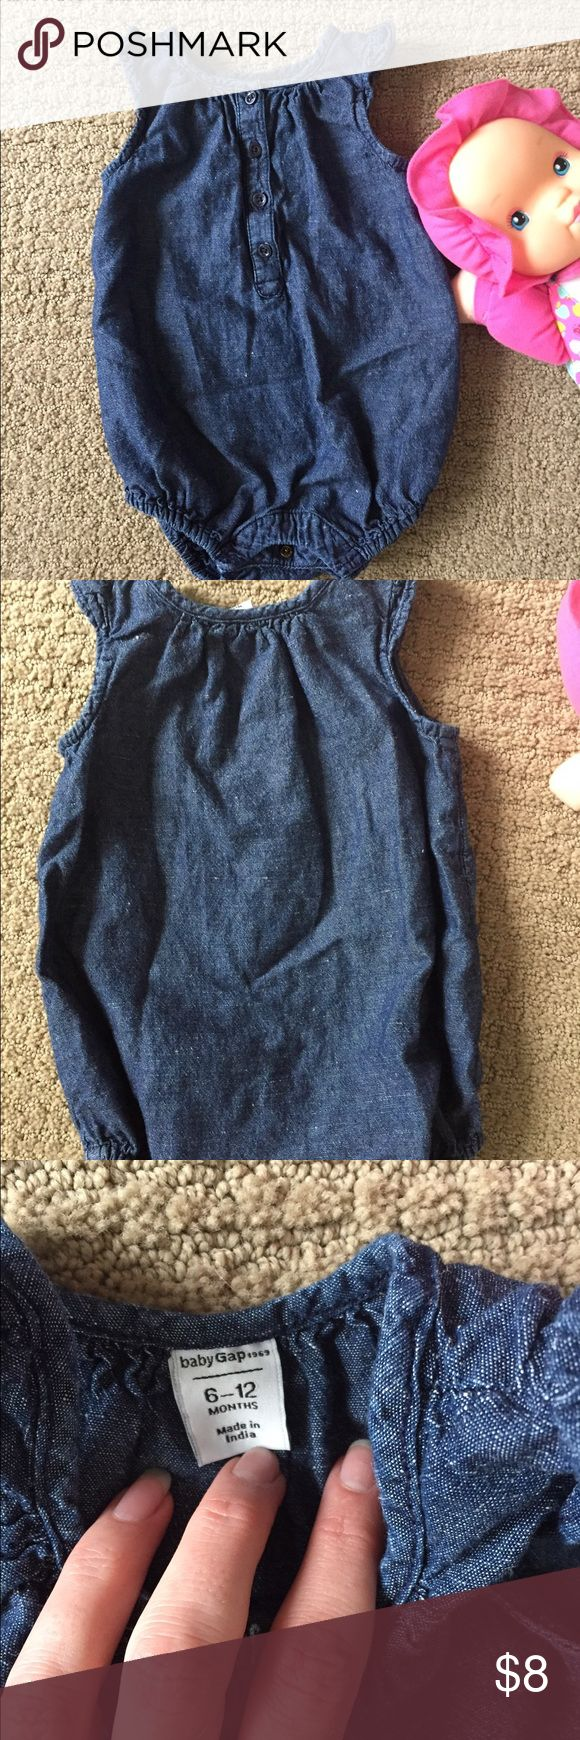 🍭 Baby girl denim romper 6-12 mos 🍭 Cute denim romper from Baby Gap has ruffled shoulders, button front, and snaps at crotch for easy dressing and changes. 6-12 mos. EUC Baby Gap One Pieces